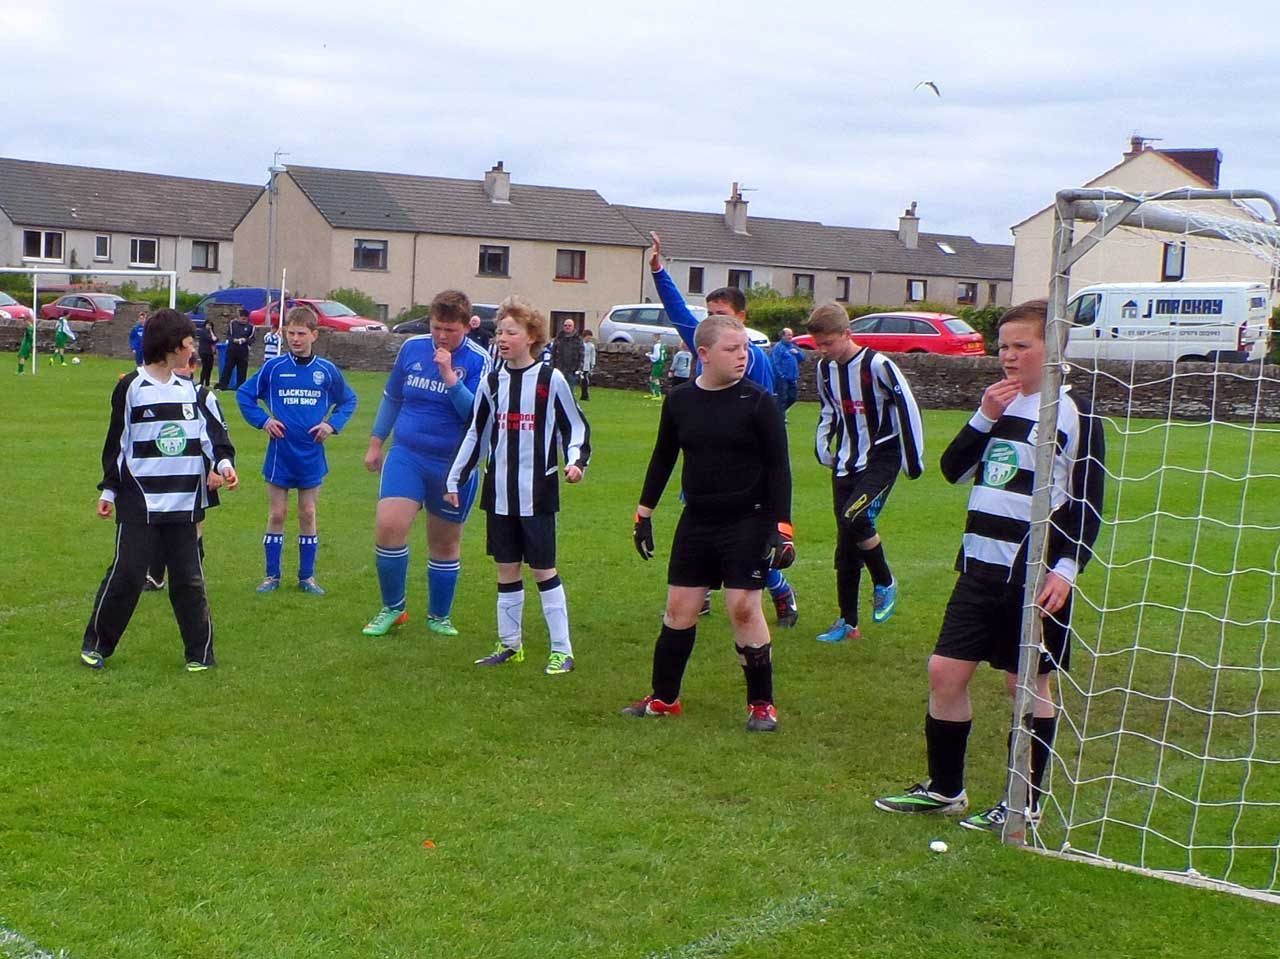 Photo: Castletown Junior Football Club Tournament 2014